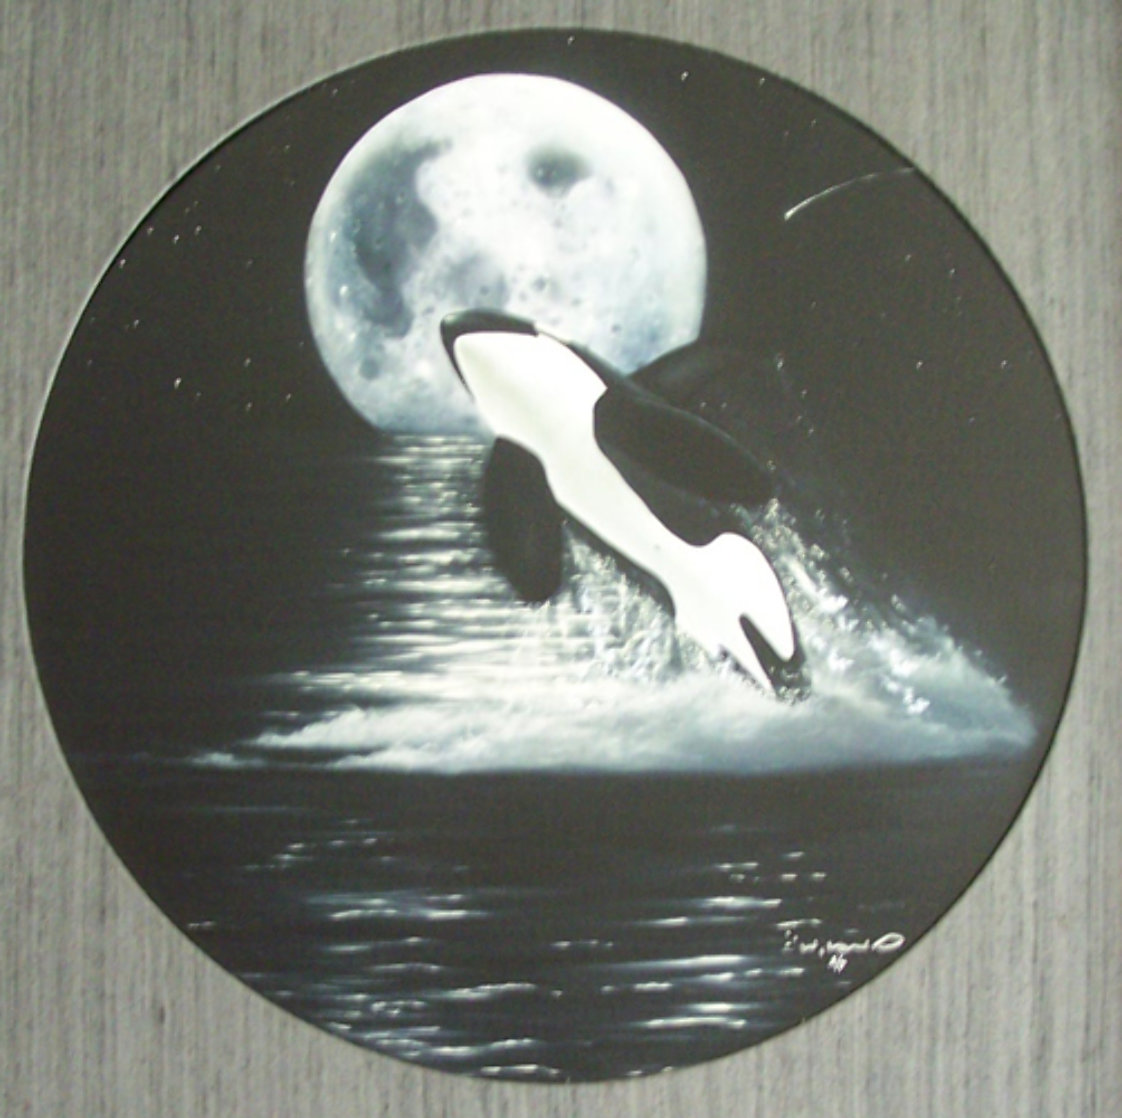 Orca Moon AP Limited Edition Print by Robert Wyland